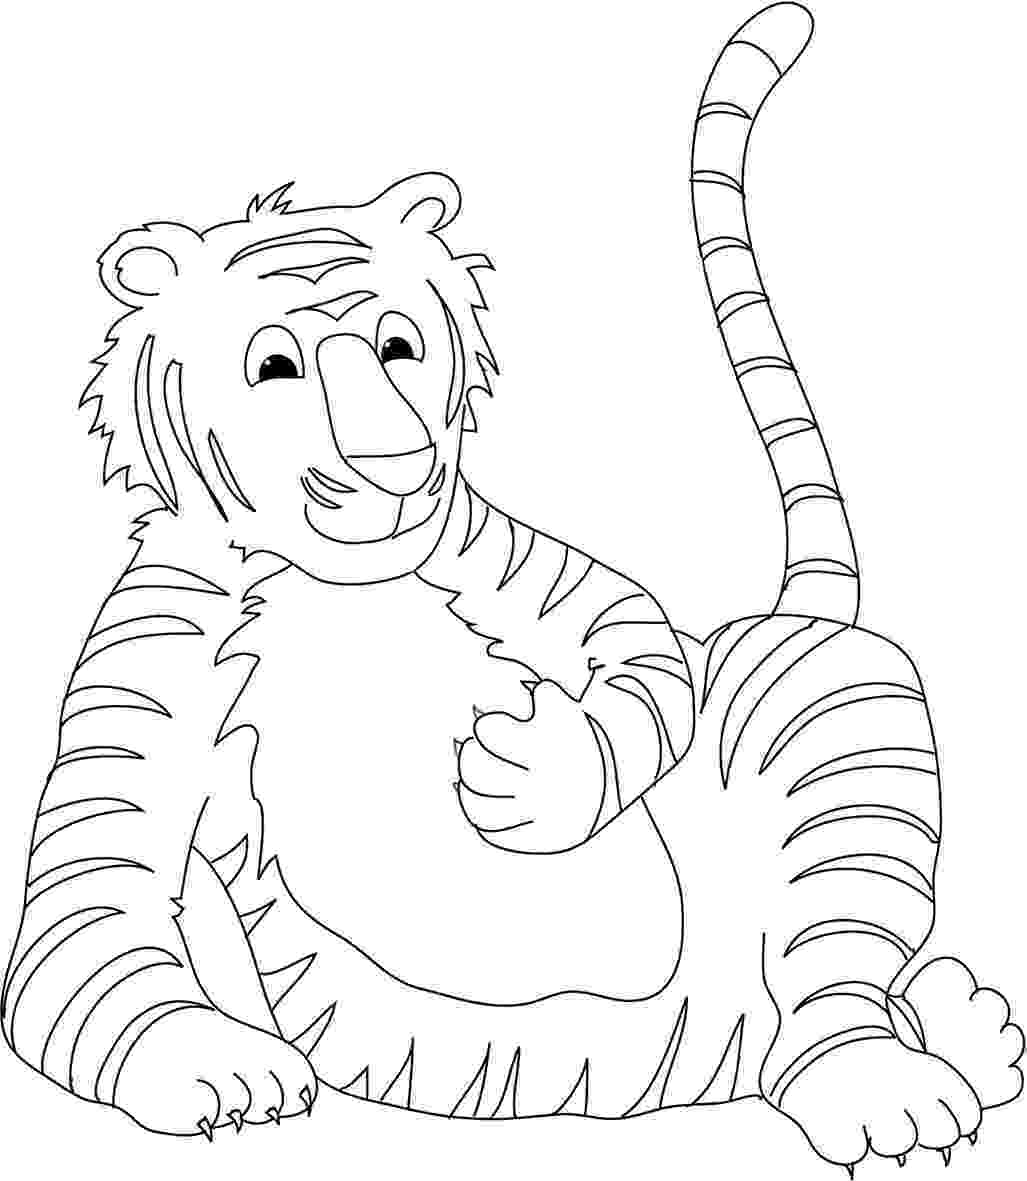 tiger without stripes coloring page tiger without stripes coloring page coloring pages without tiger coloring stripes page